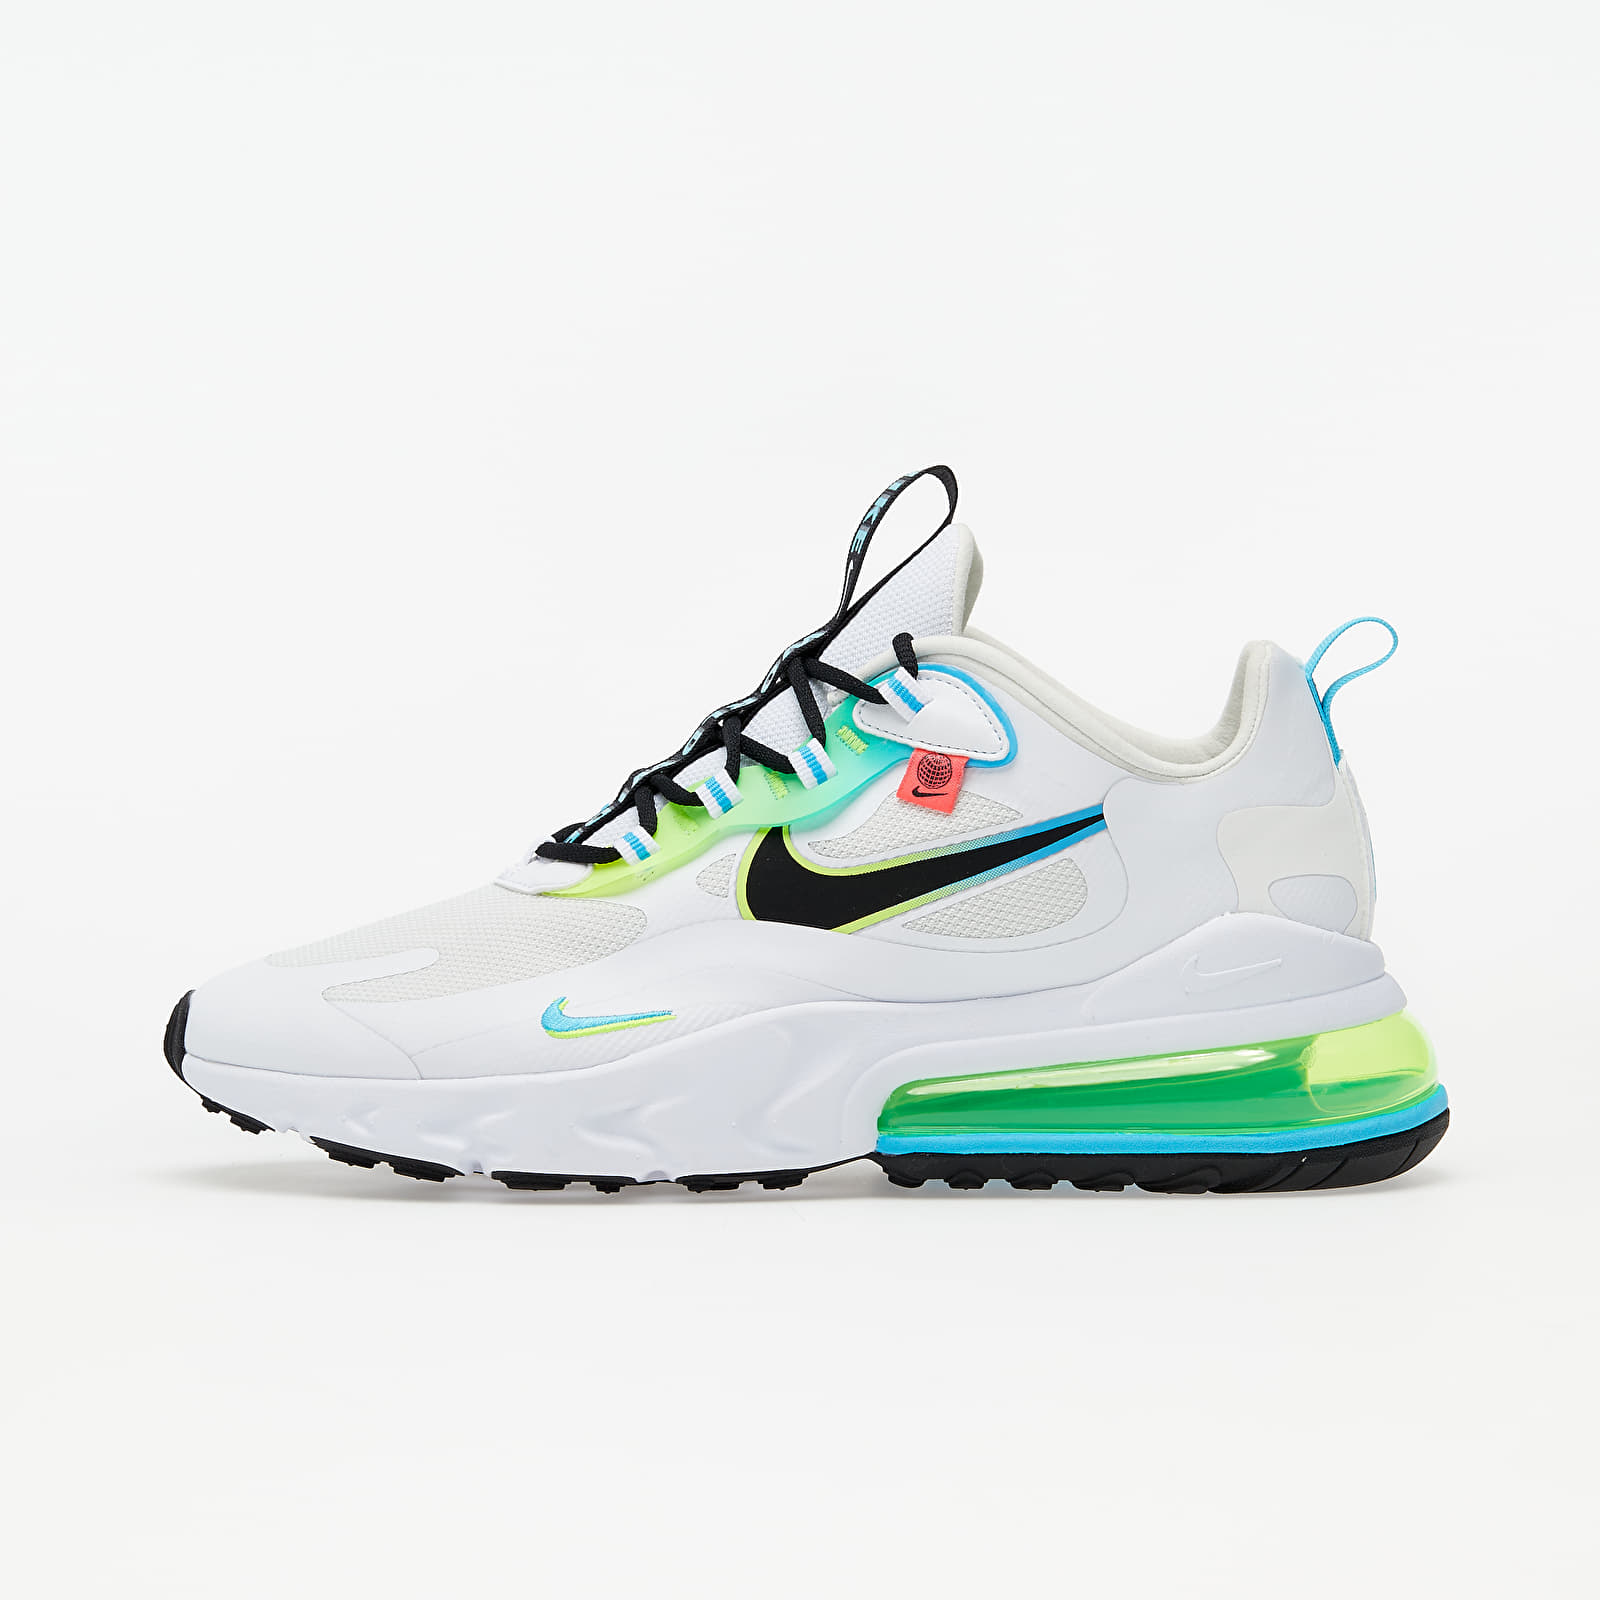 Men's shoes Nike Air Max 270 React WW White/ Black-Blue Fury-Volt